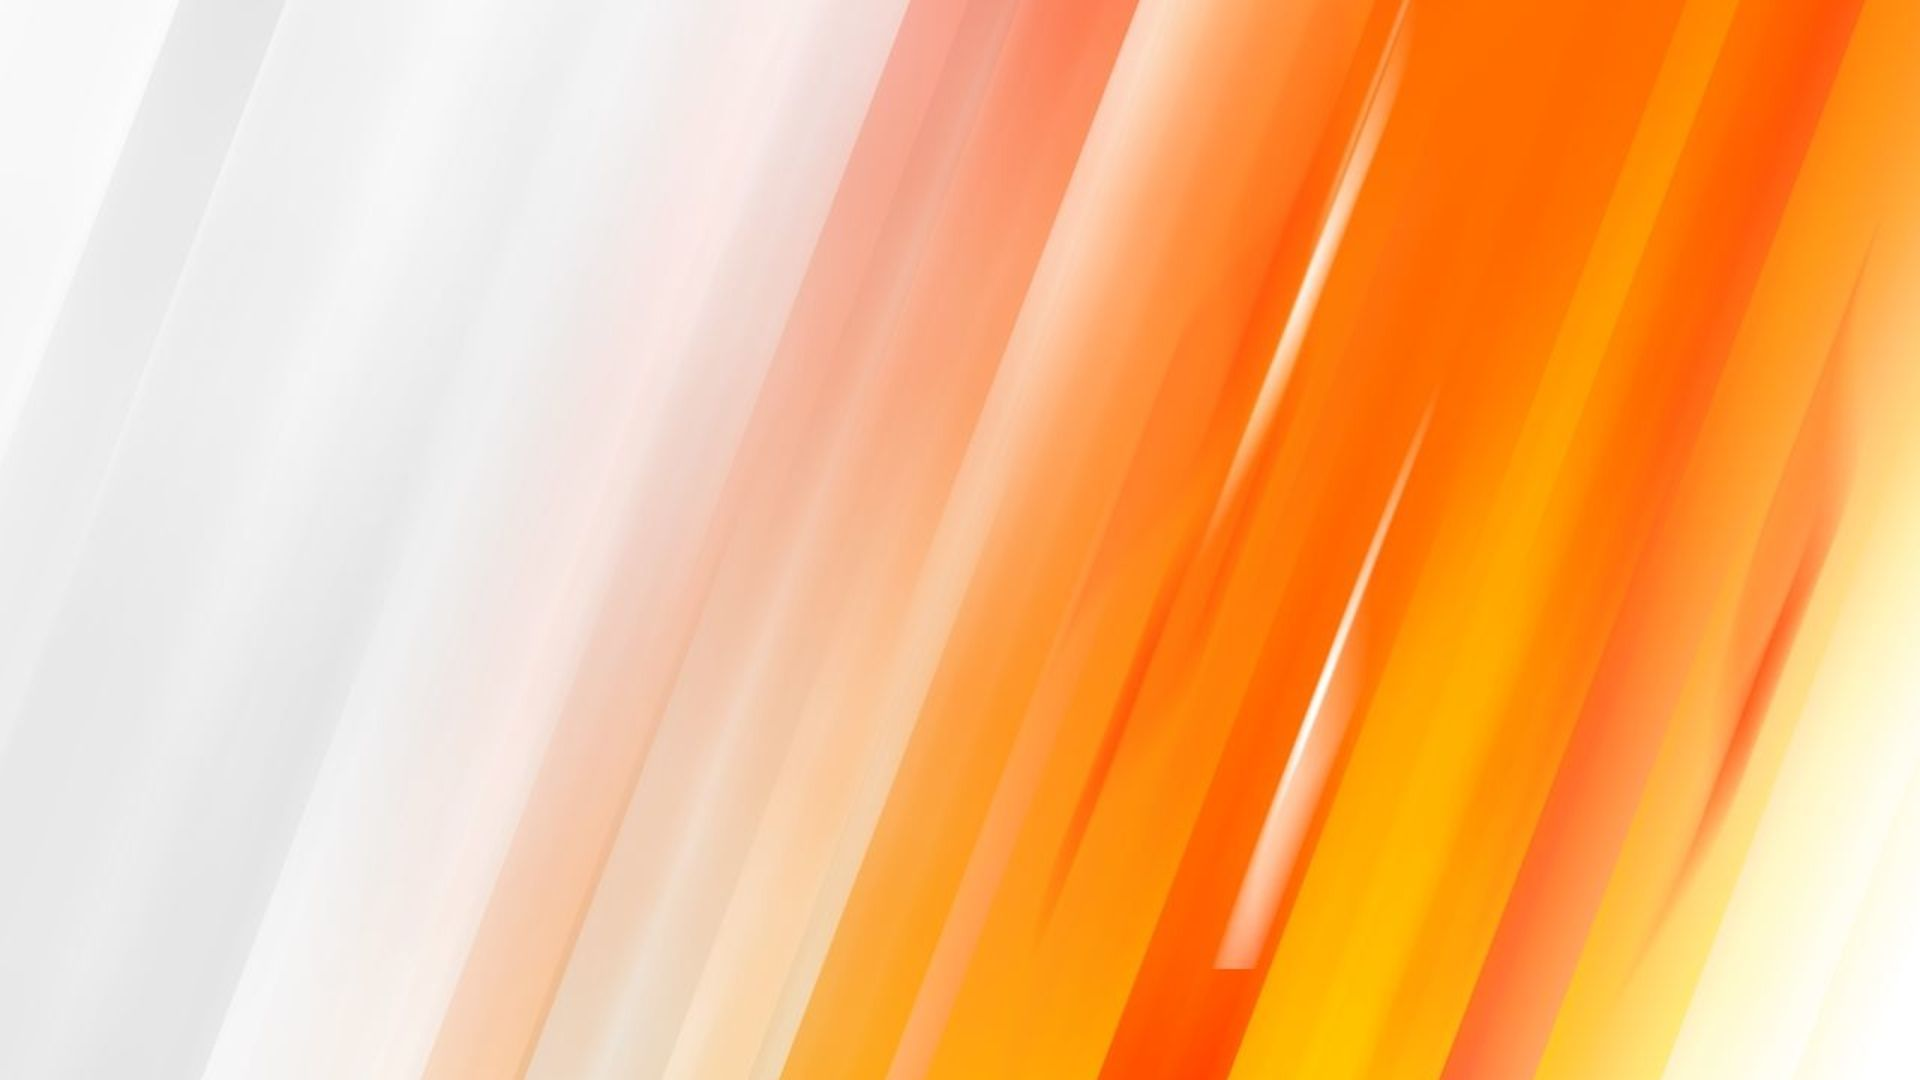 Orange And White wallpaper download